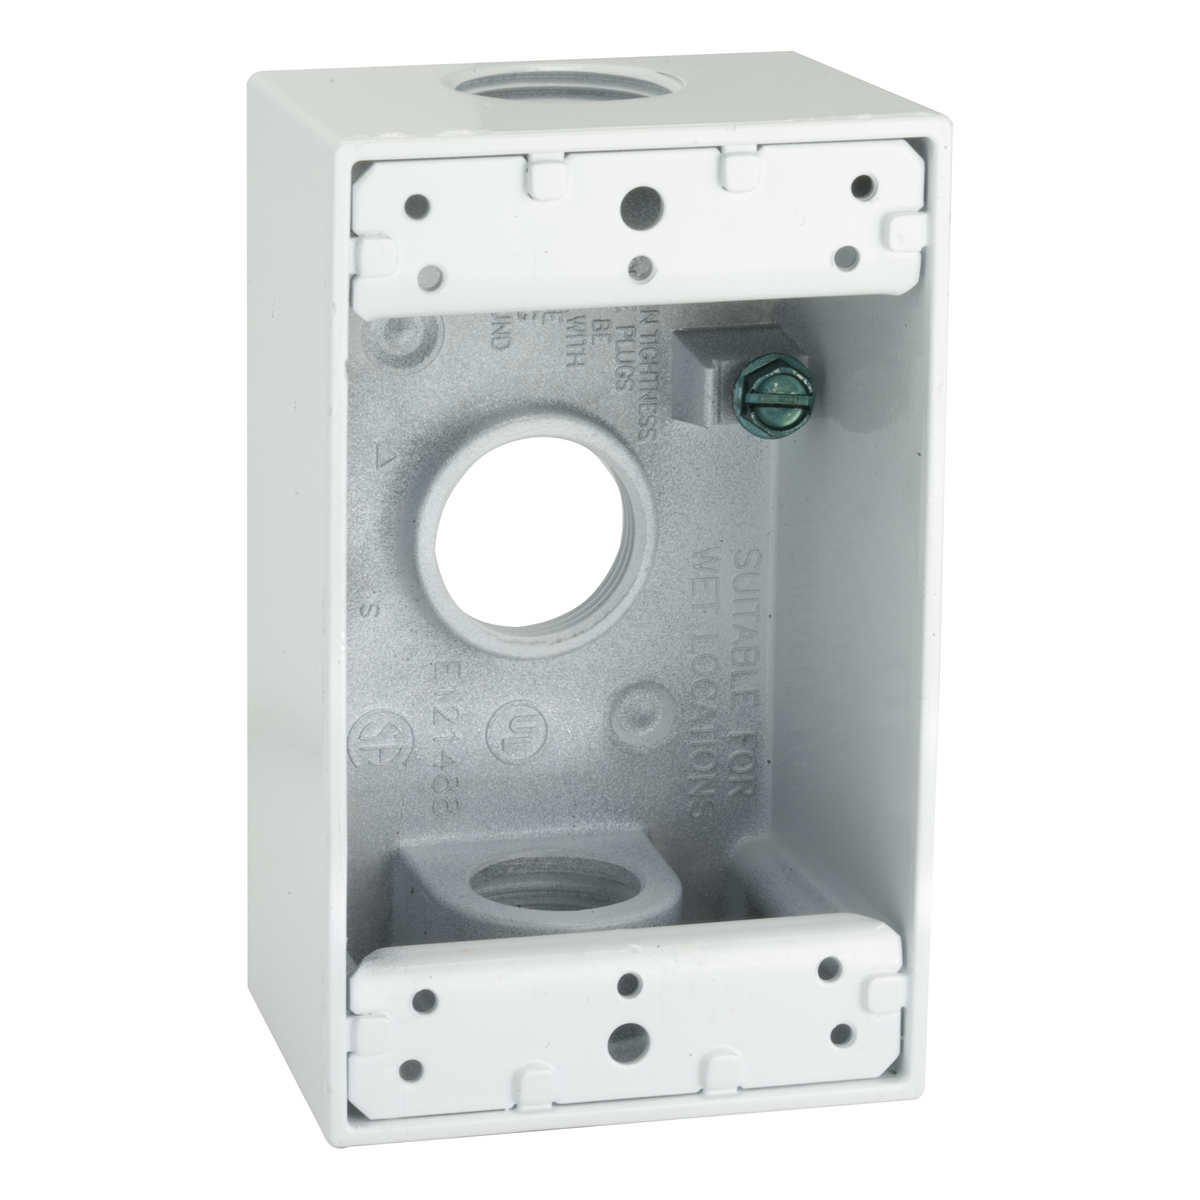 BELL,5324-1,1G WP BOX (3) 3/4 IN. OUTLETS - WHITE